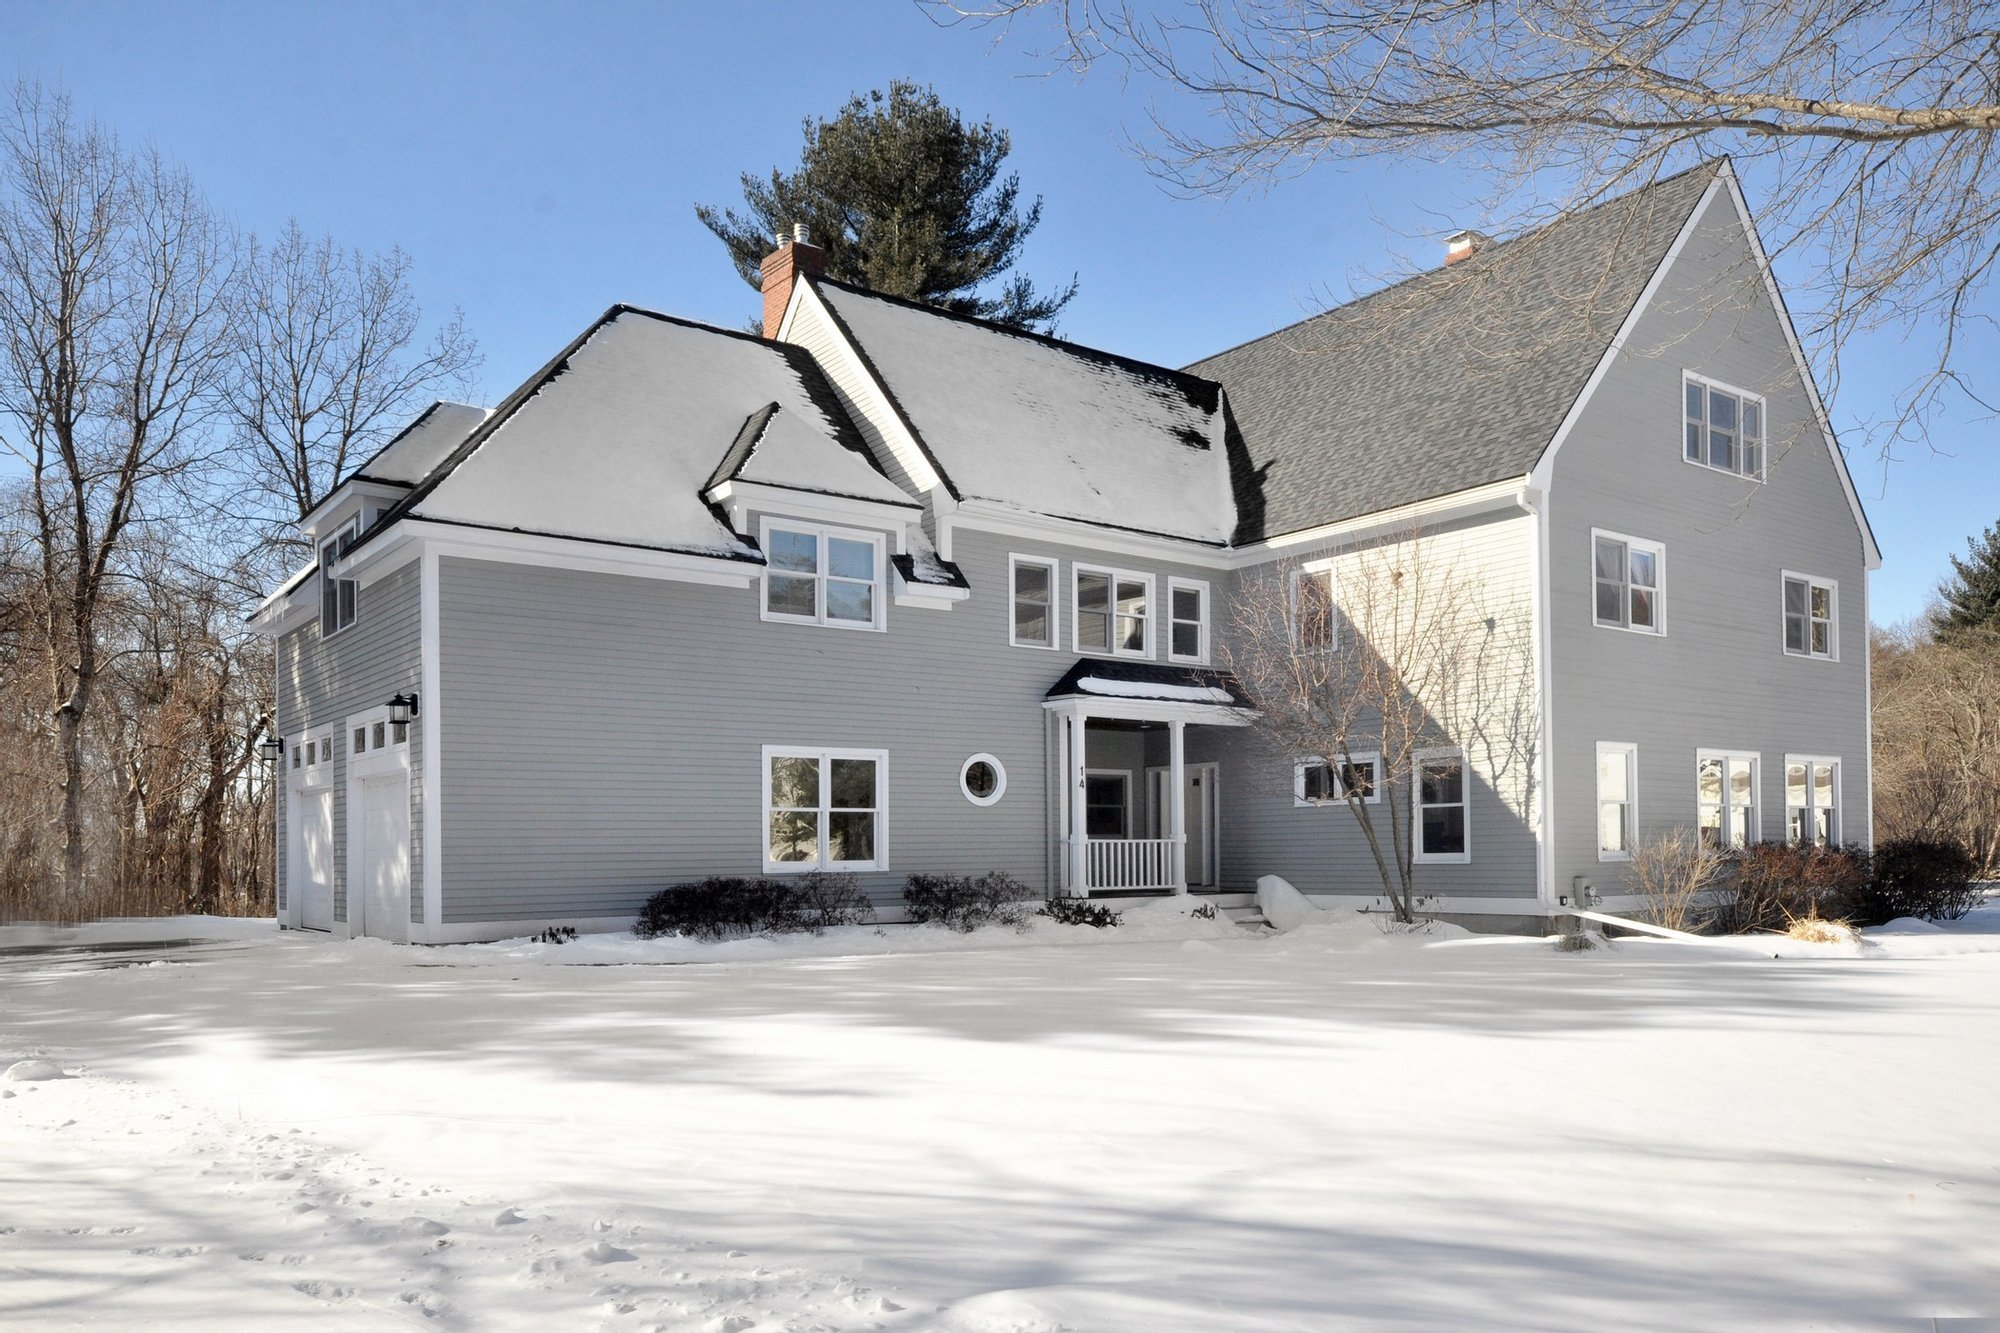 House in Concord, Massachusetts, United States 1